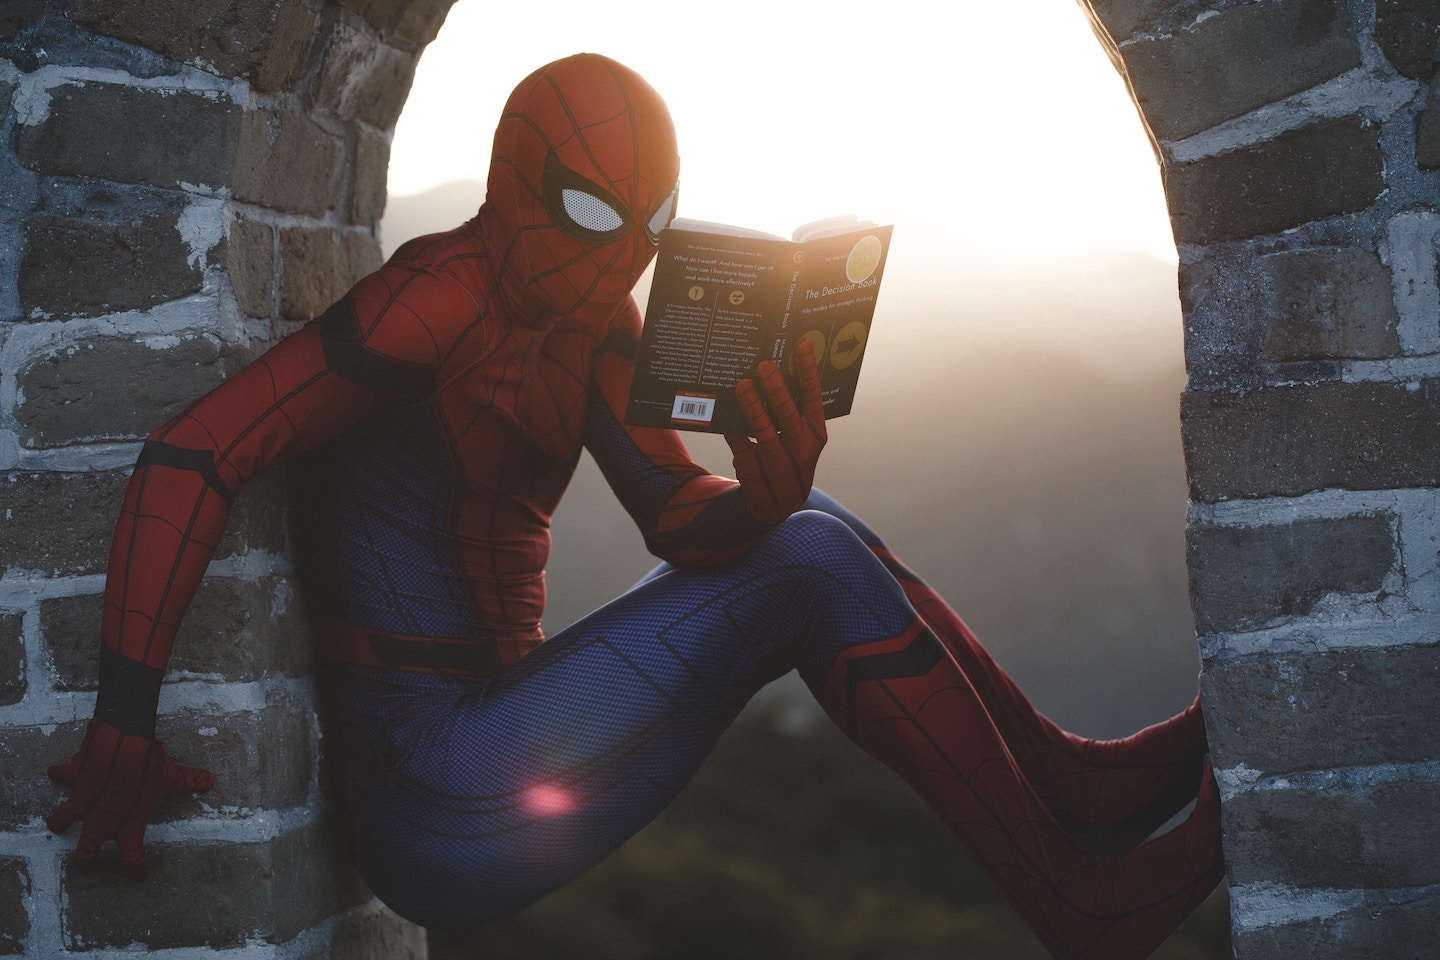 Spider-Man, Stan Lee's co-creation, perched against a wall while reading. Photo by  Raj Eiamworakul  on  Unsplash